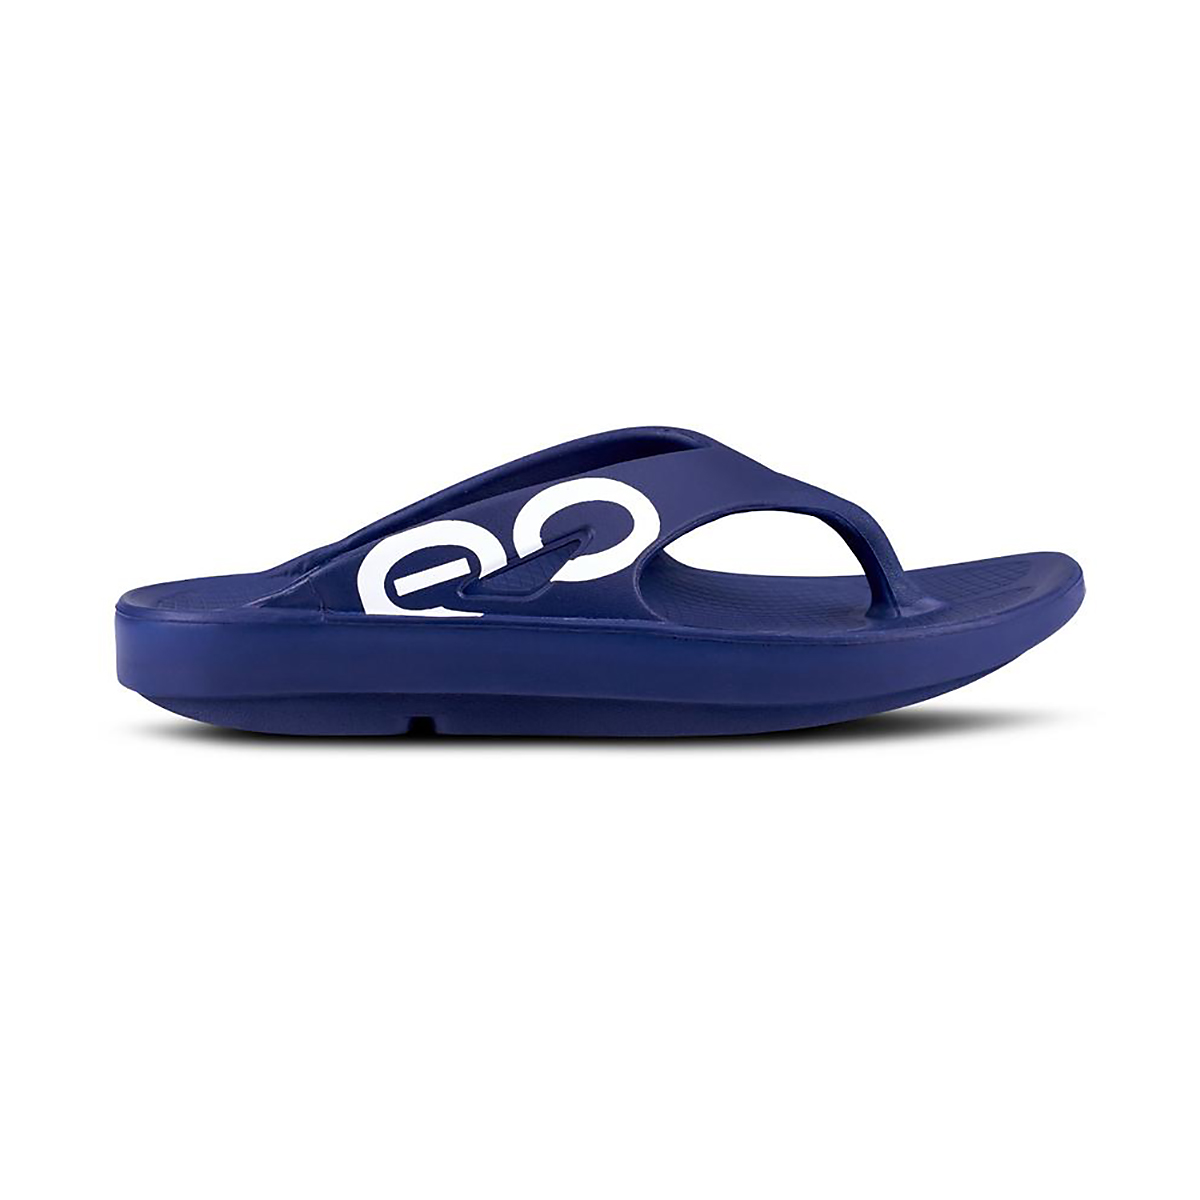 Oofos OOriginal Sport Recovery Sandal - Color: Navy - Size: M7/W9 - Width: Regular, Navy, large, image 1